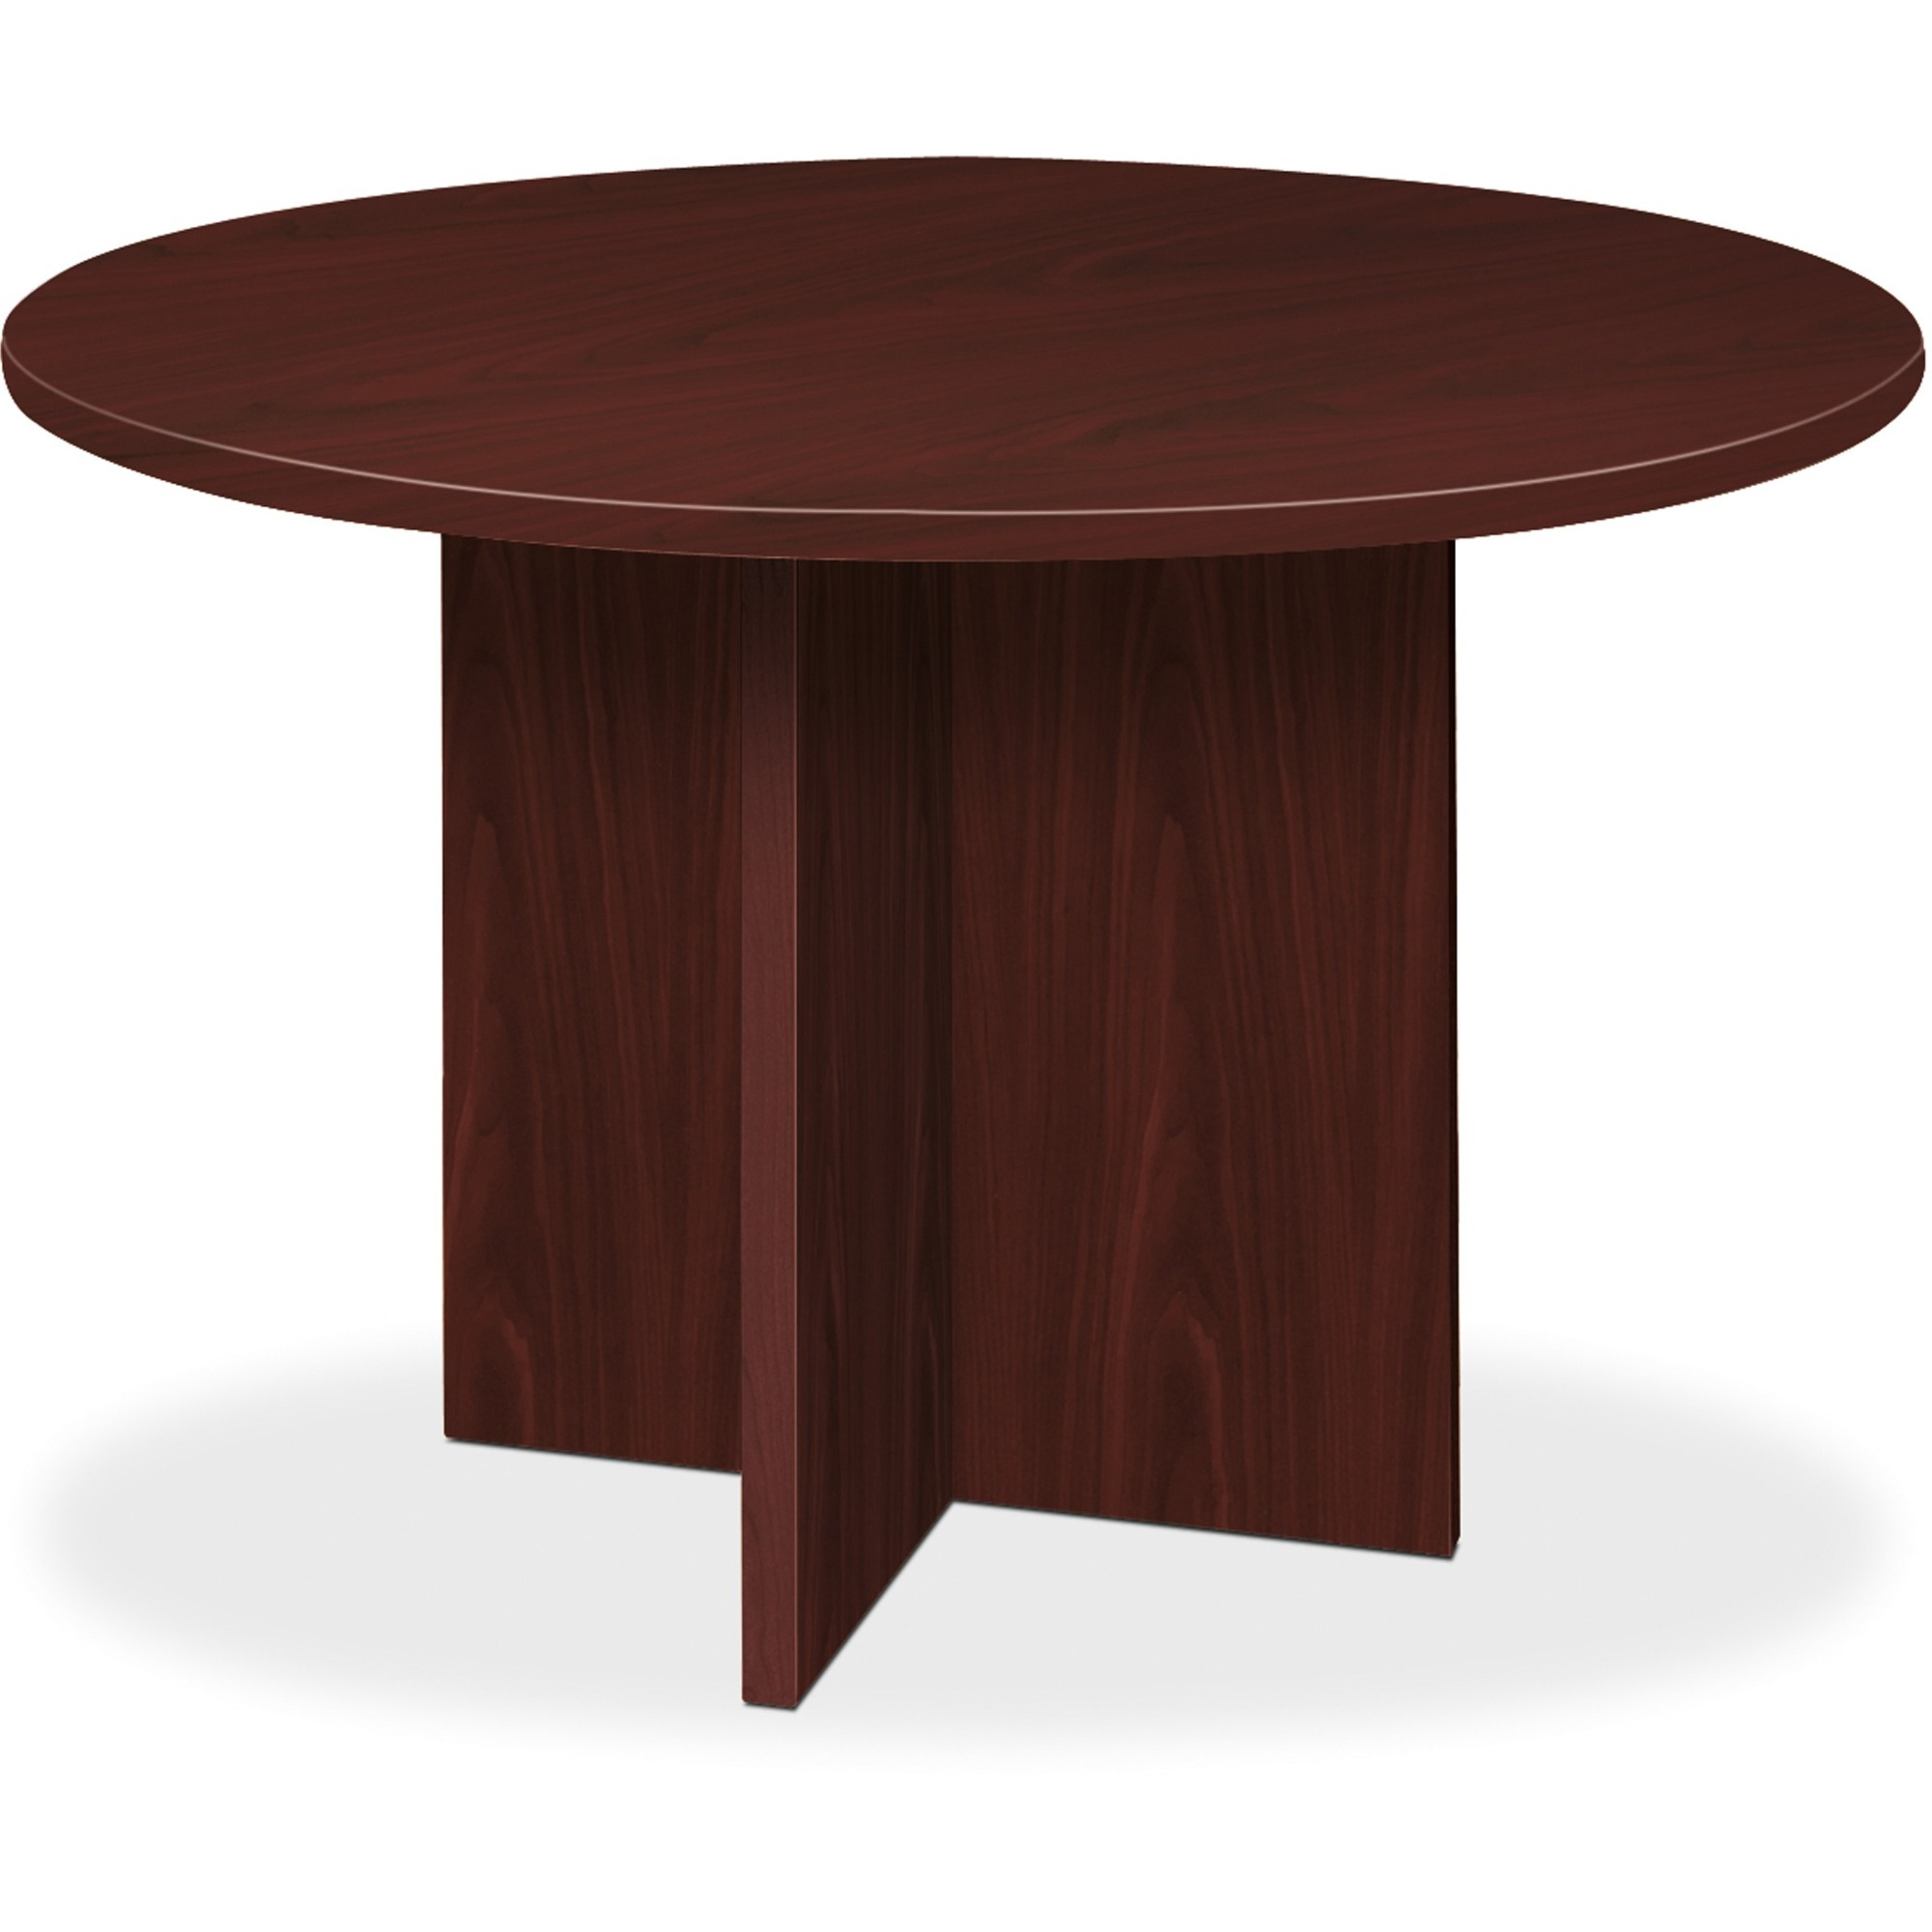 to with used table training matching tables catalog maple credenza new conference room match